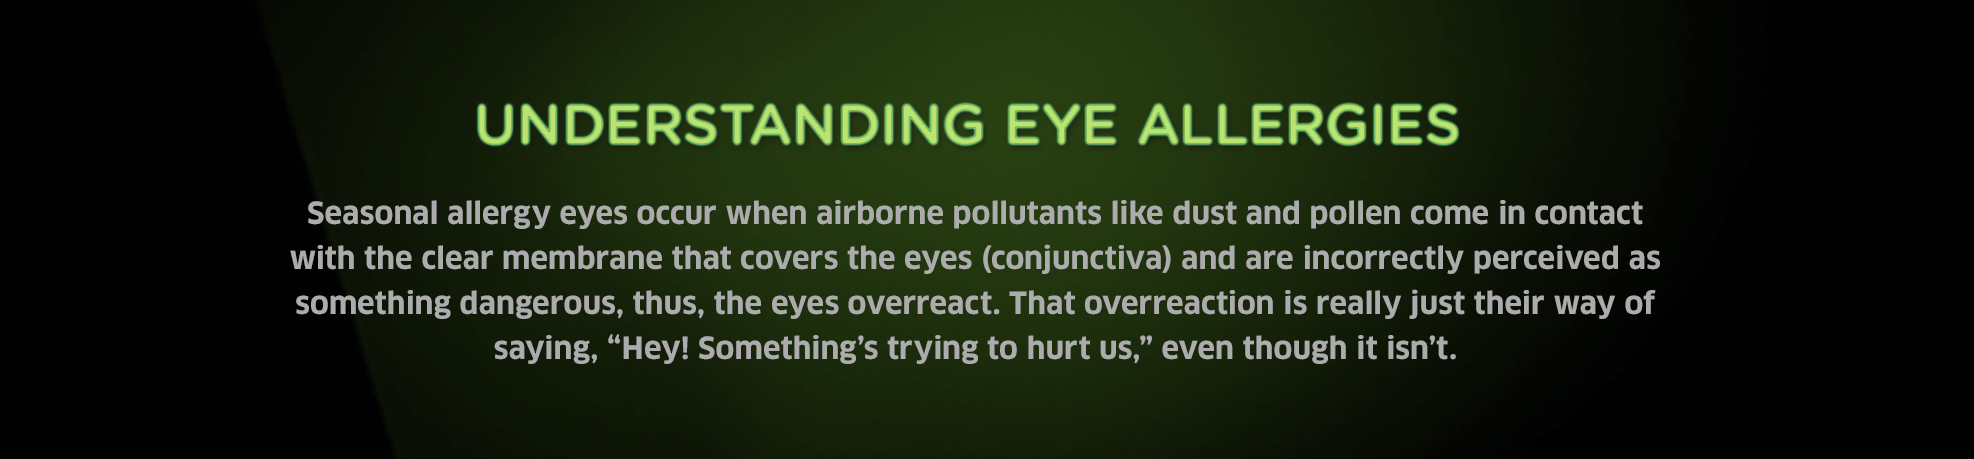 What Causes Eye Allergies?